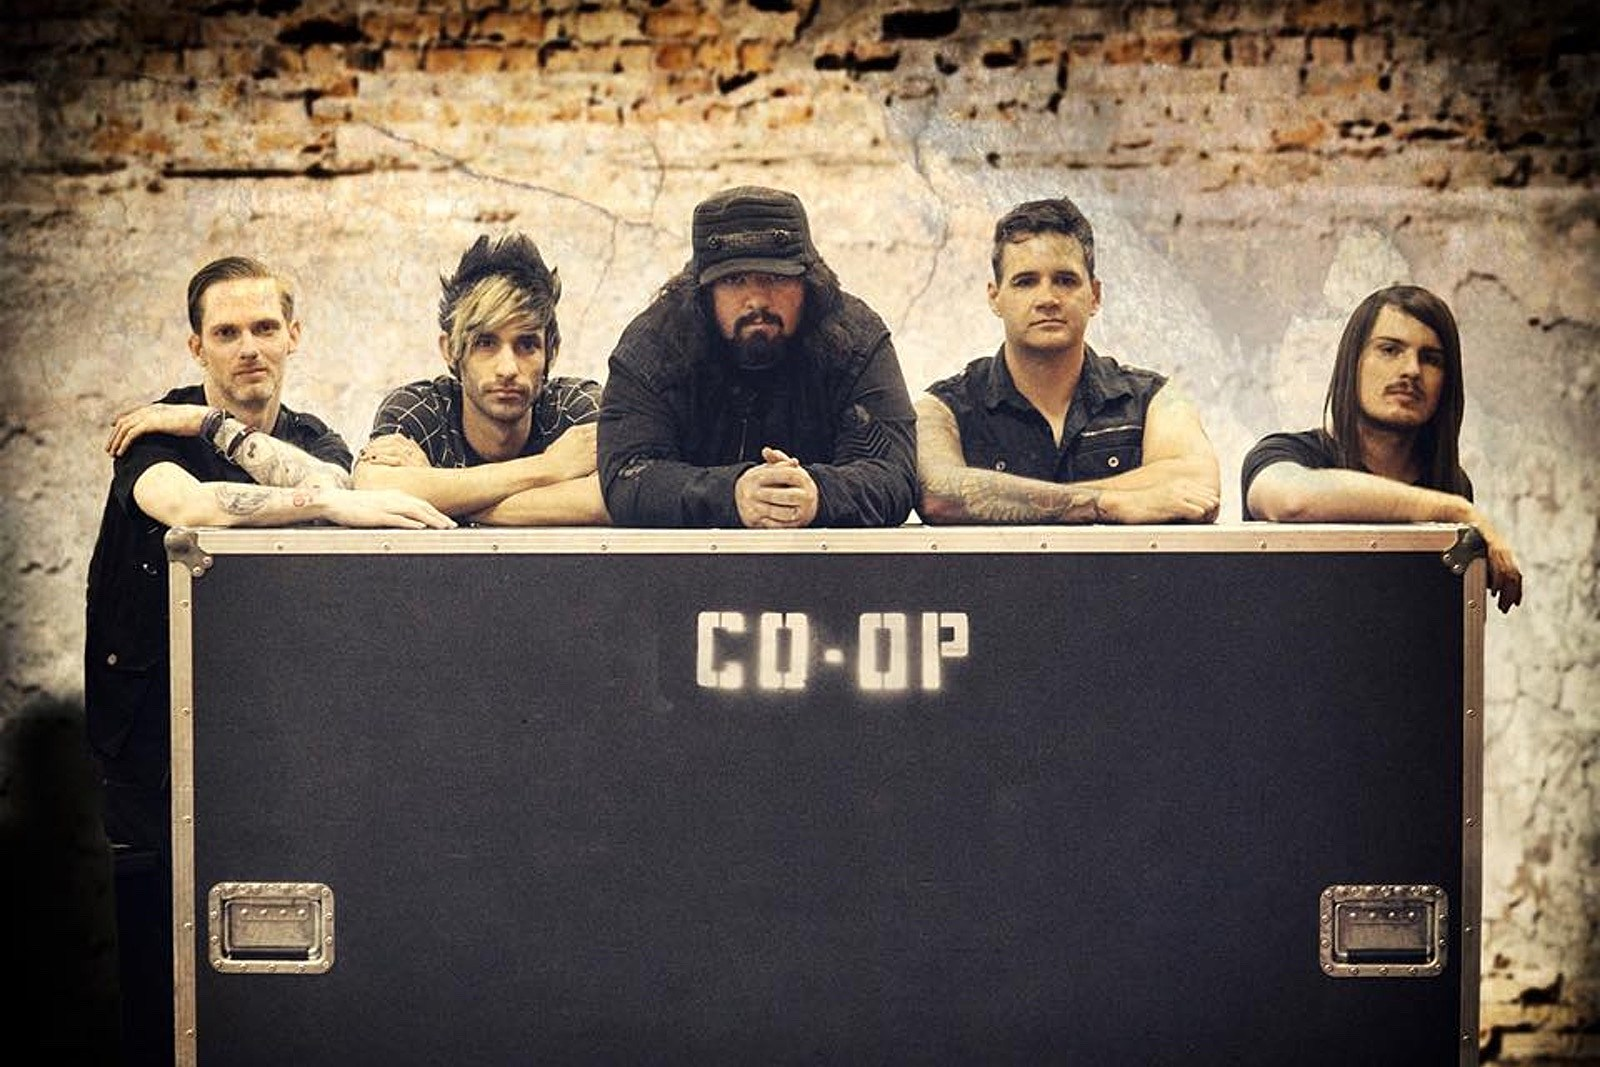 CO-OP, Band Led by Alice Cooper's Son Dash, Announce First LP